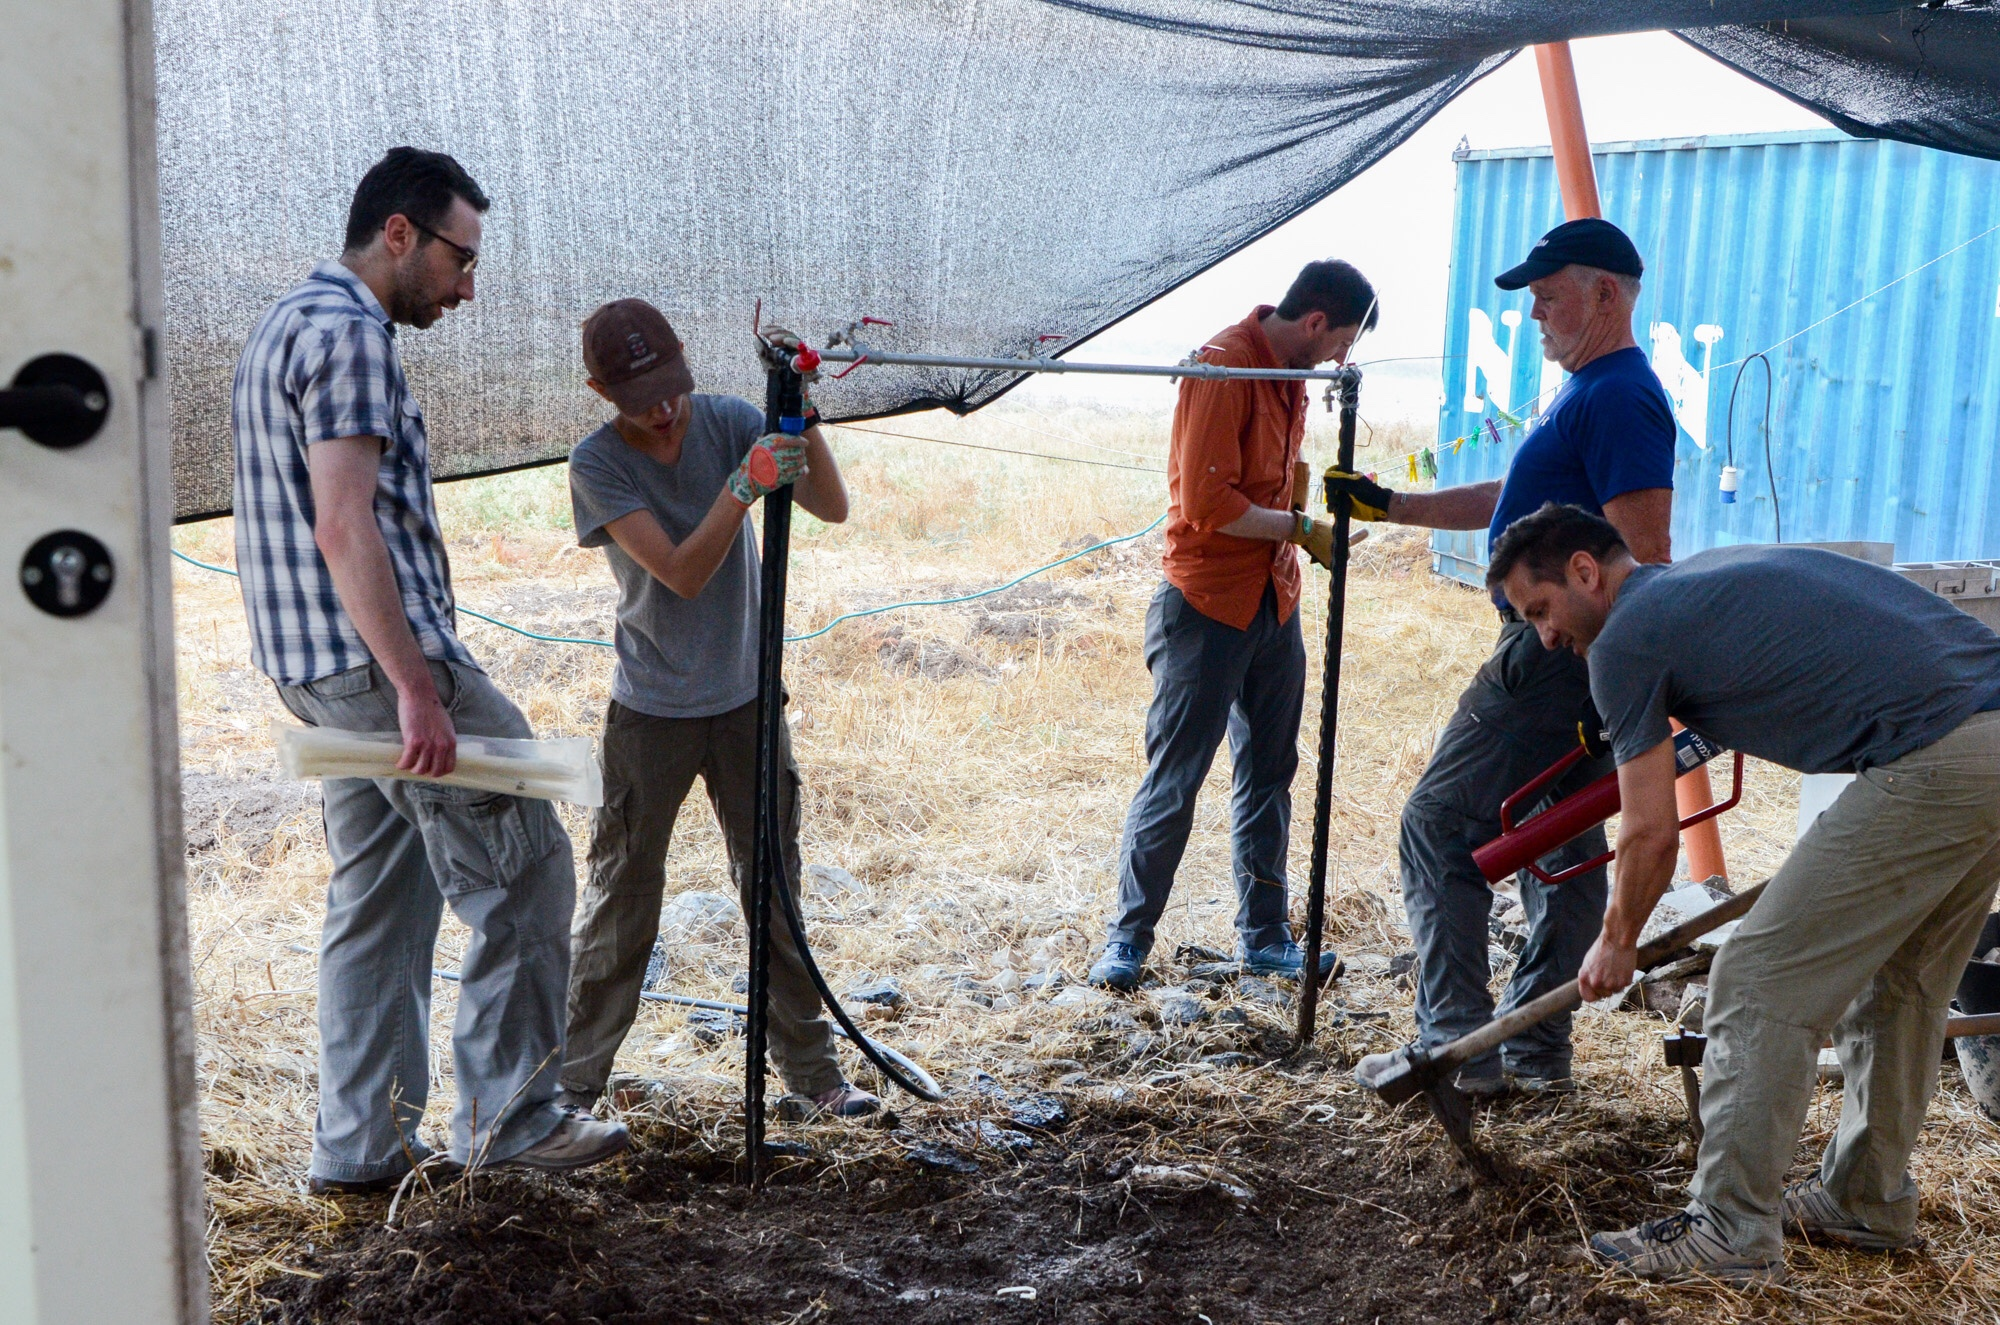 Constructing a pavement for the water spigot in the pottery compound